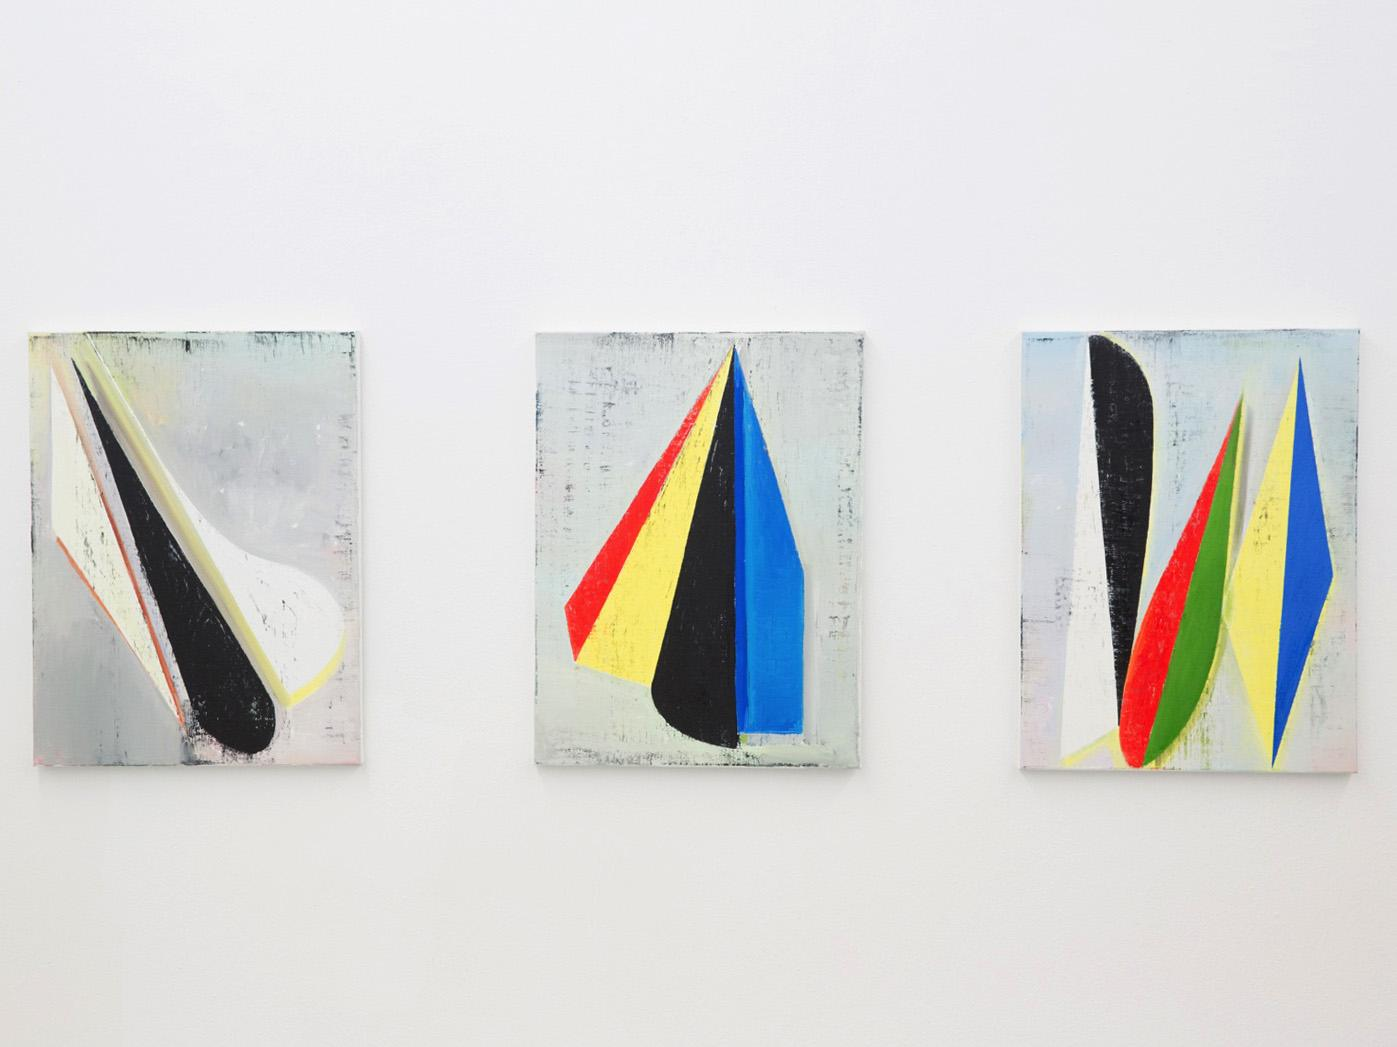 Artworks by Genti Korini Knoll Galerie curated by Edit Sasvari Photo: eSeL